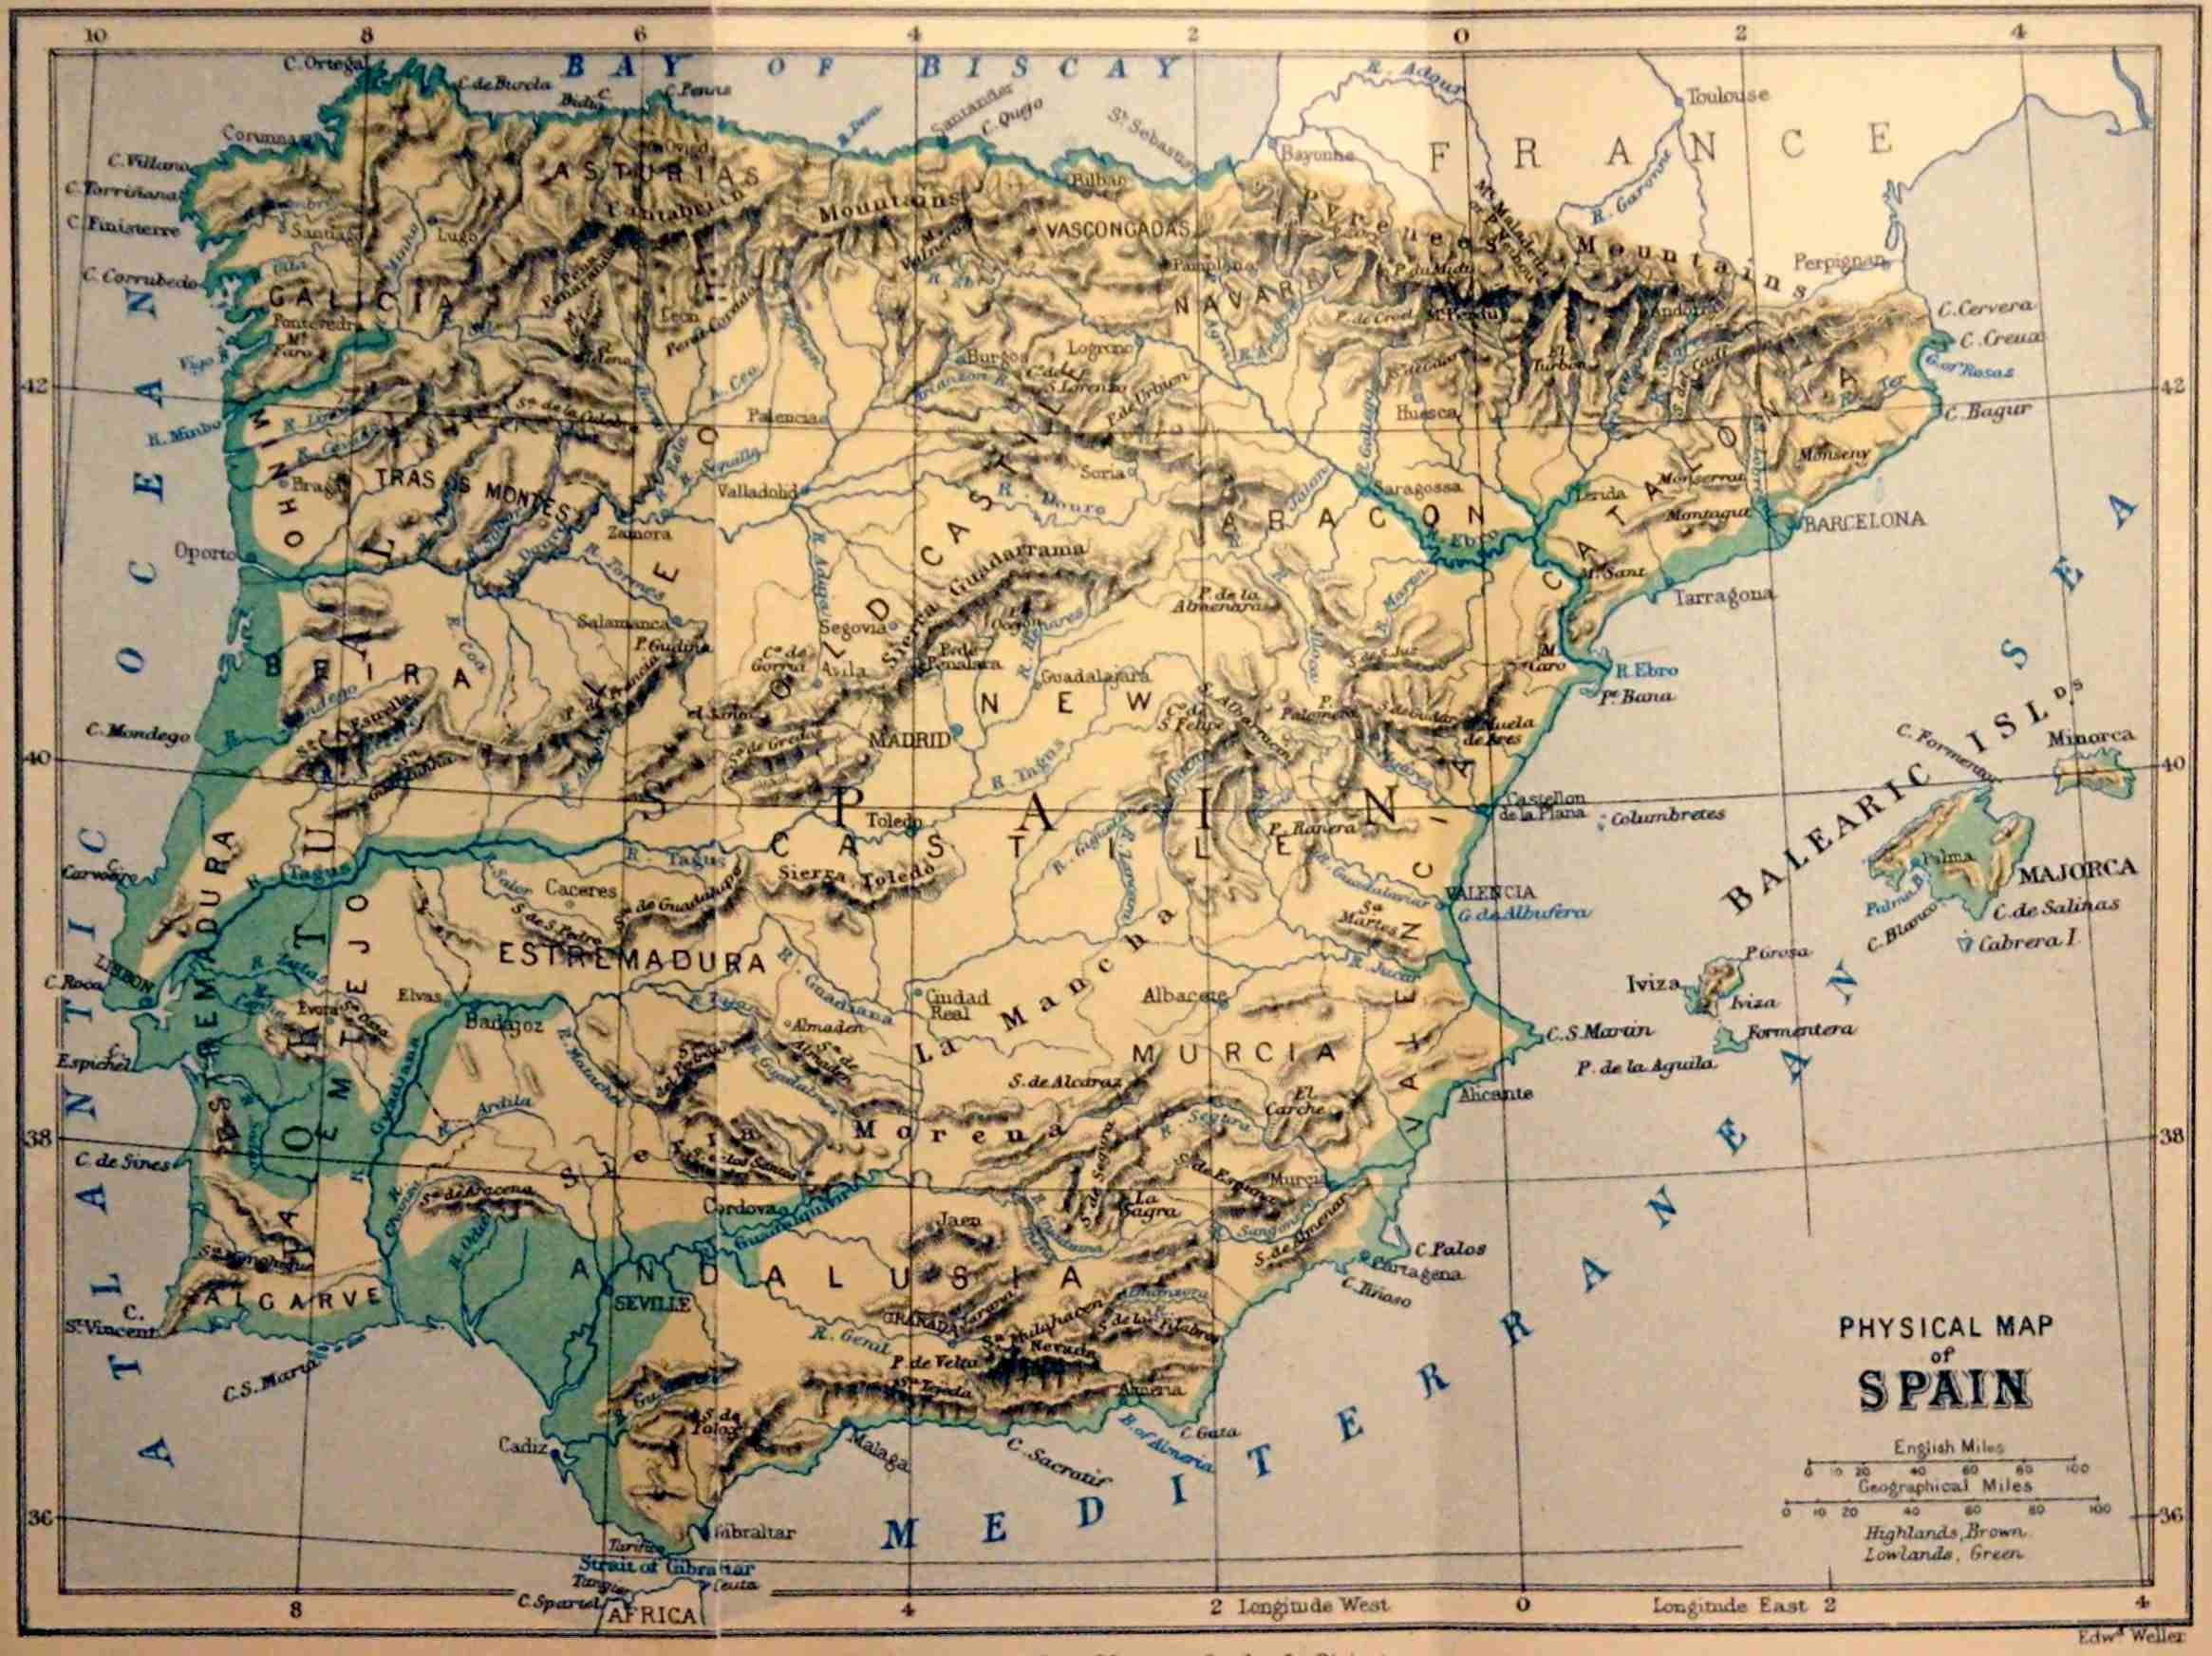 Rio Tambre Mapa Fisico.The Project Gutenberg Ebook Of Spain By Wentworth Webster